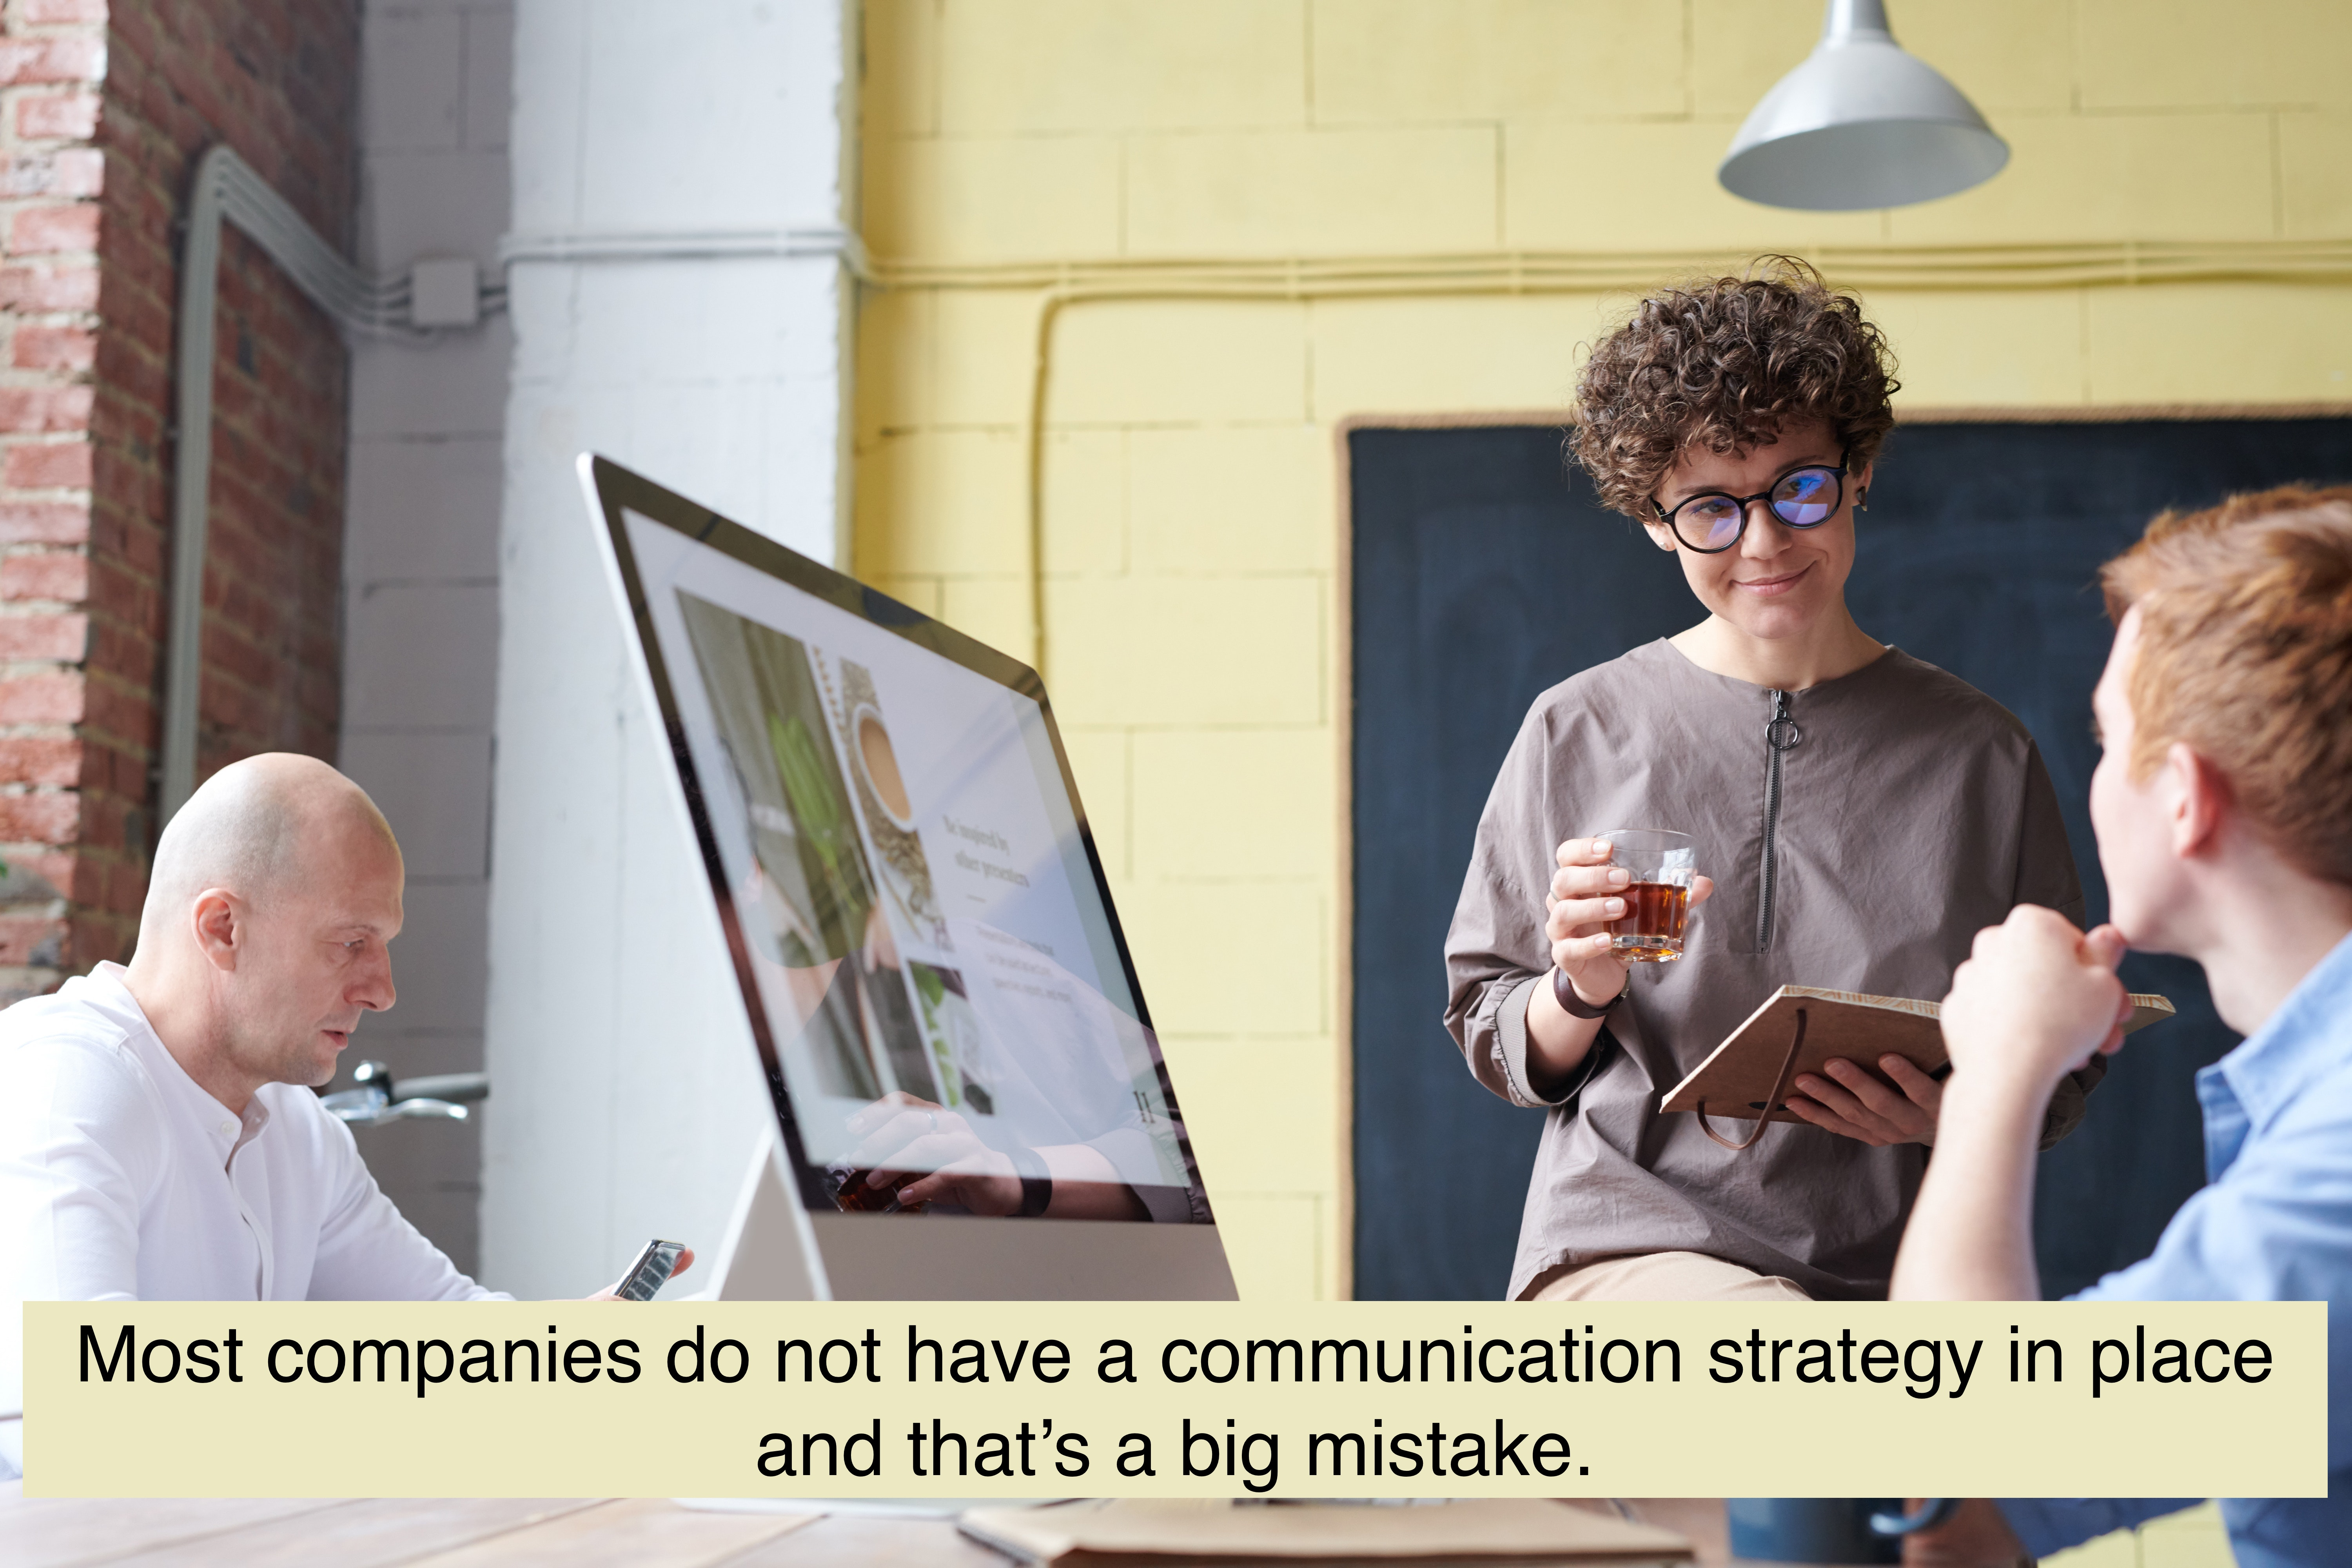 Most companies do not have a communication strategy in place and that's a big mistake.